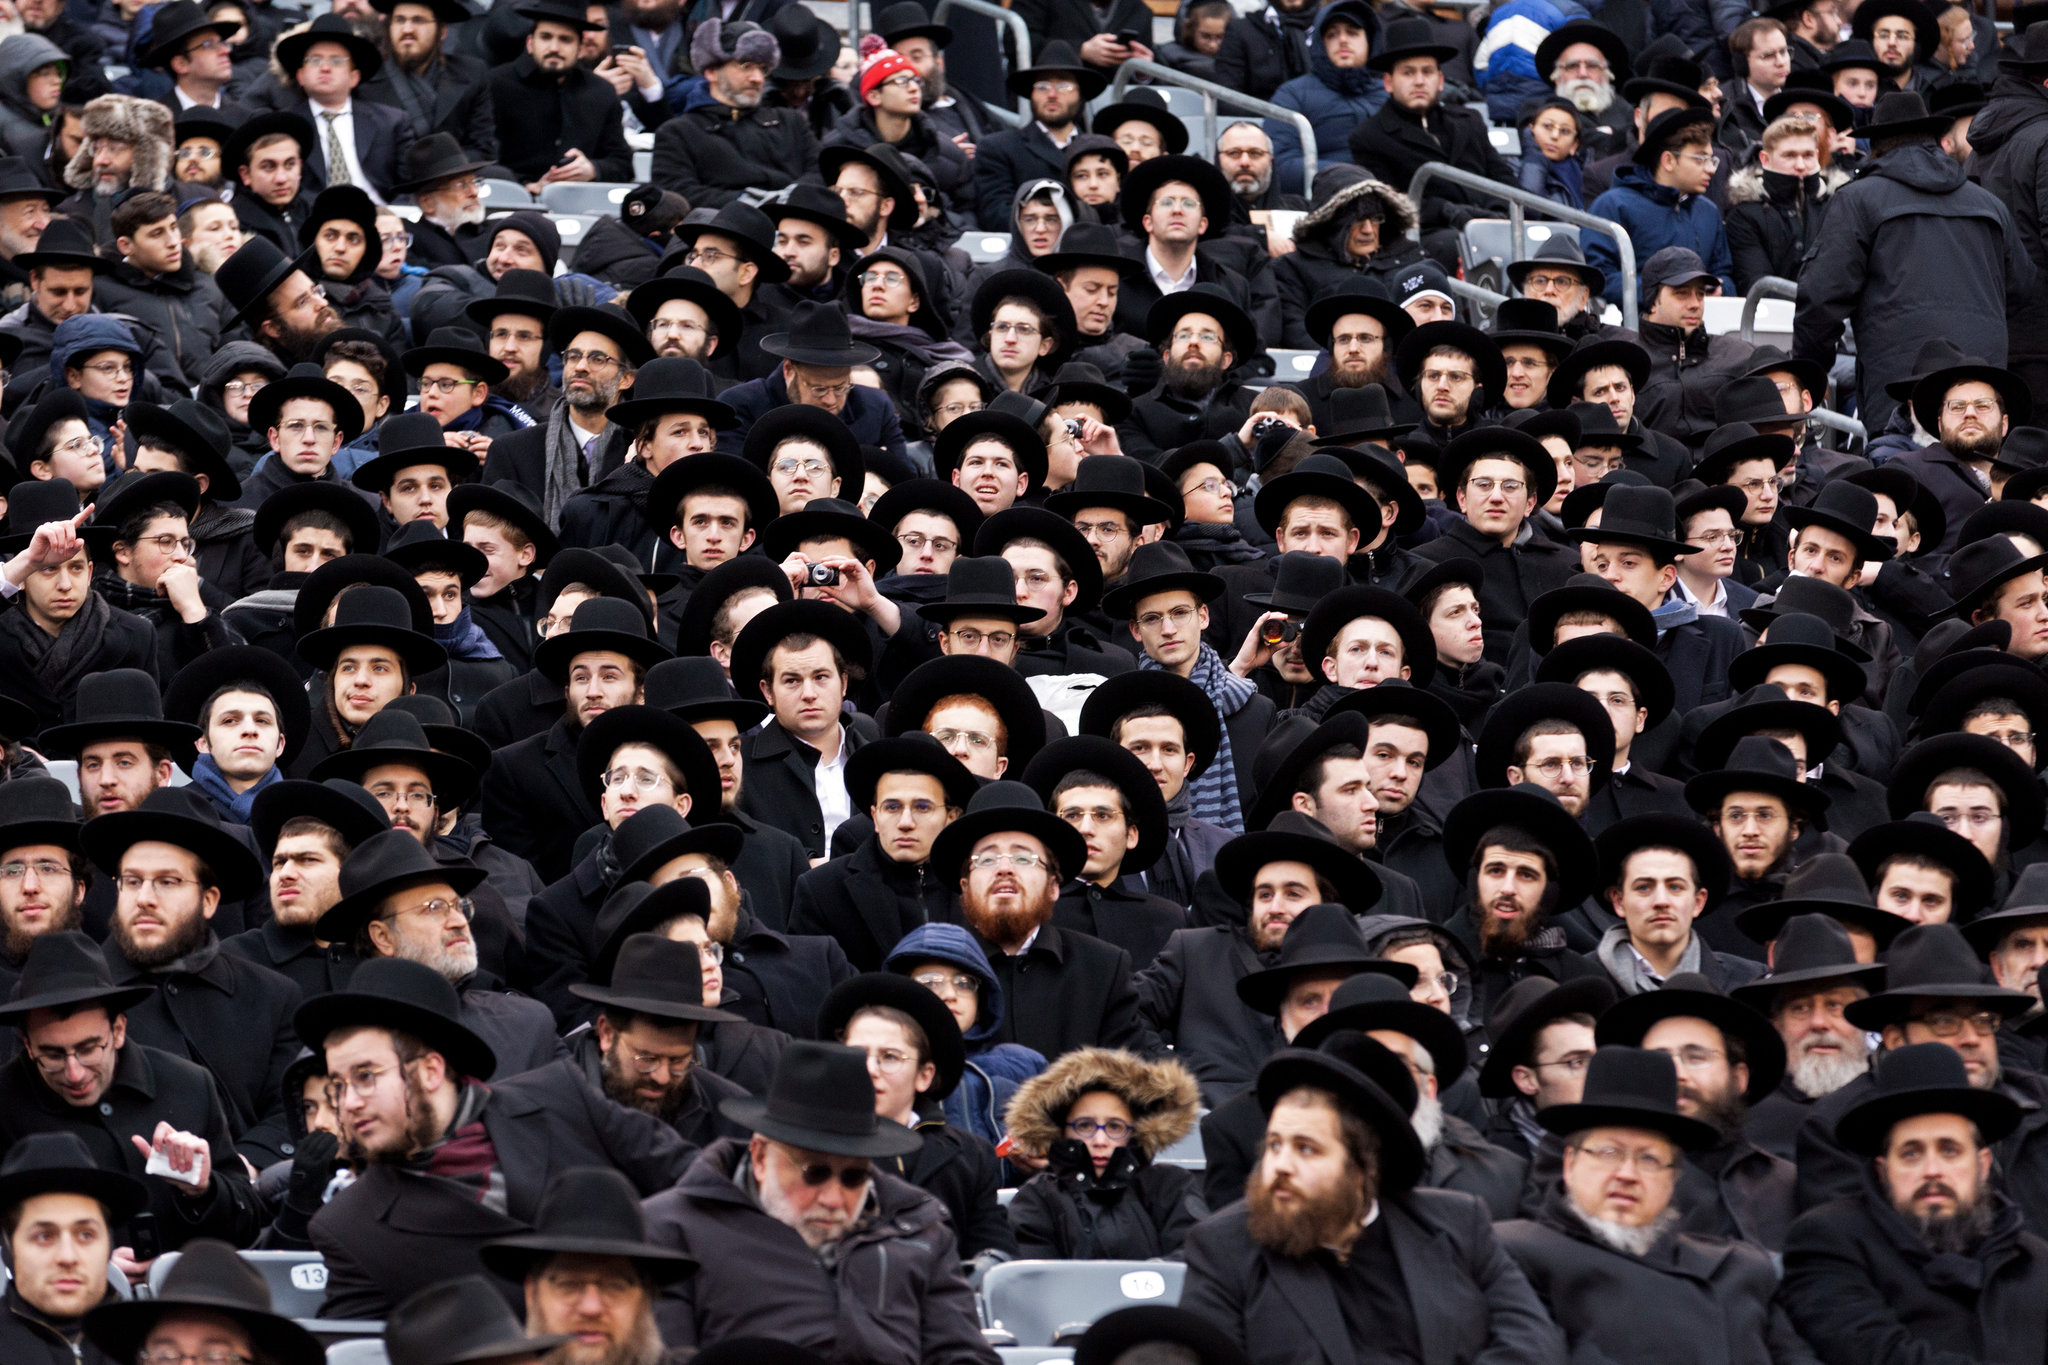 90,000 Jews Gather To Pray And Defy A Wave Of Hate - The New Within What Year Is It According To Jews